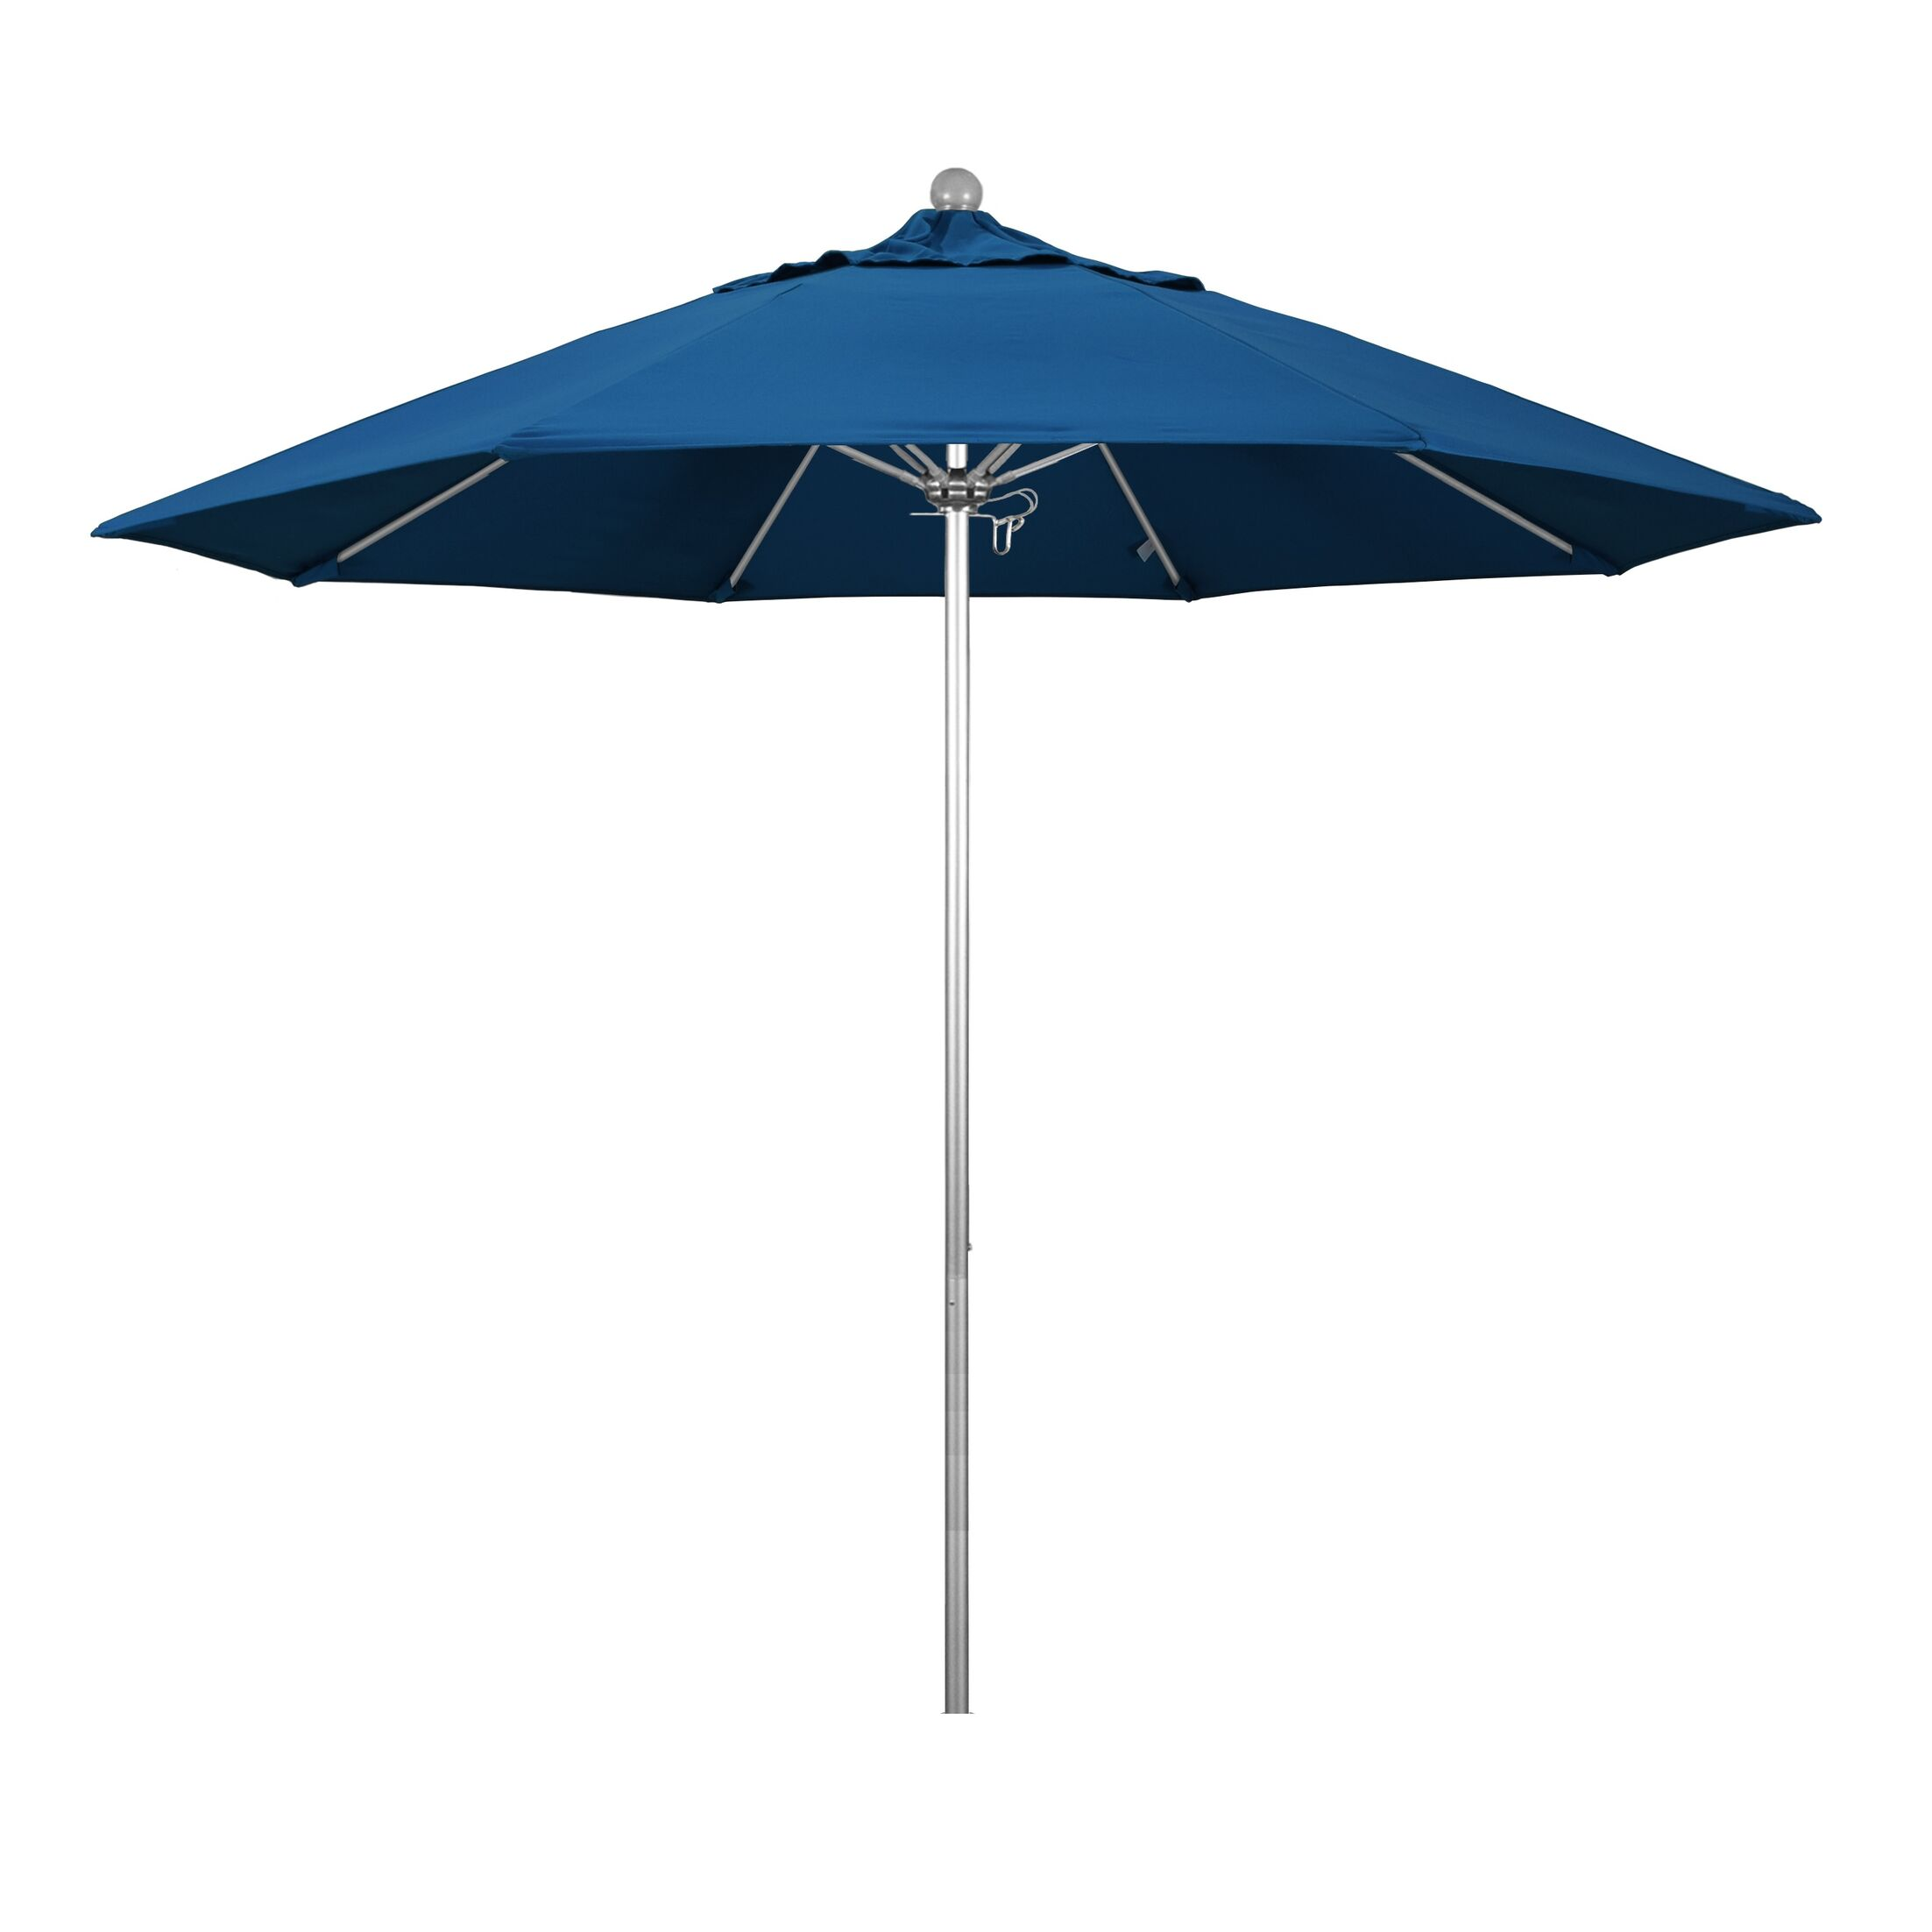 Phat Tommy Silver Anodized 9' Market Umbrella Fabric: Pacific Blue